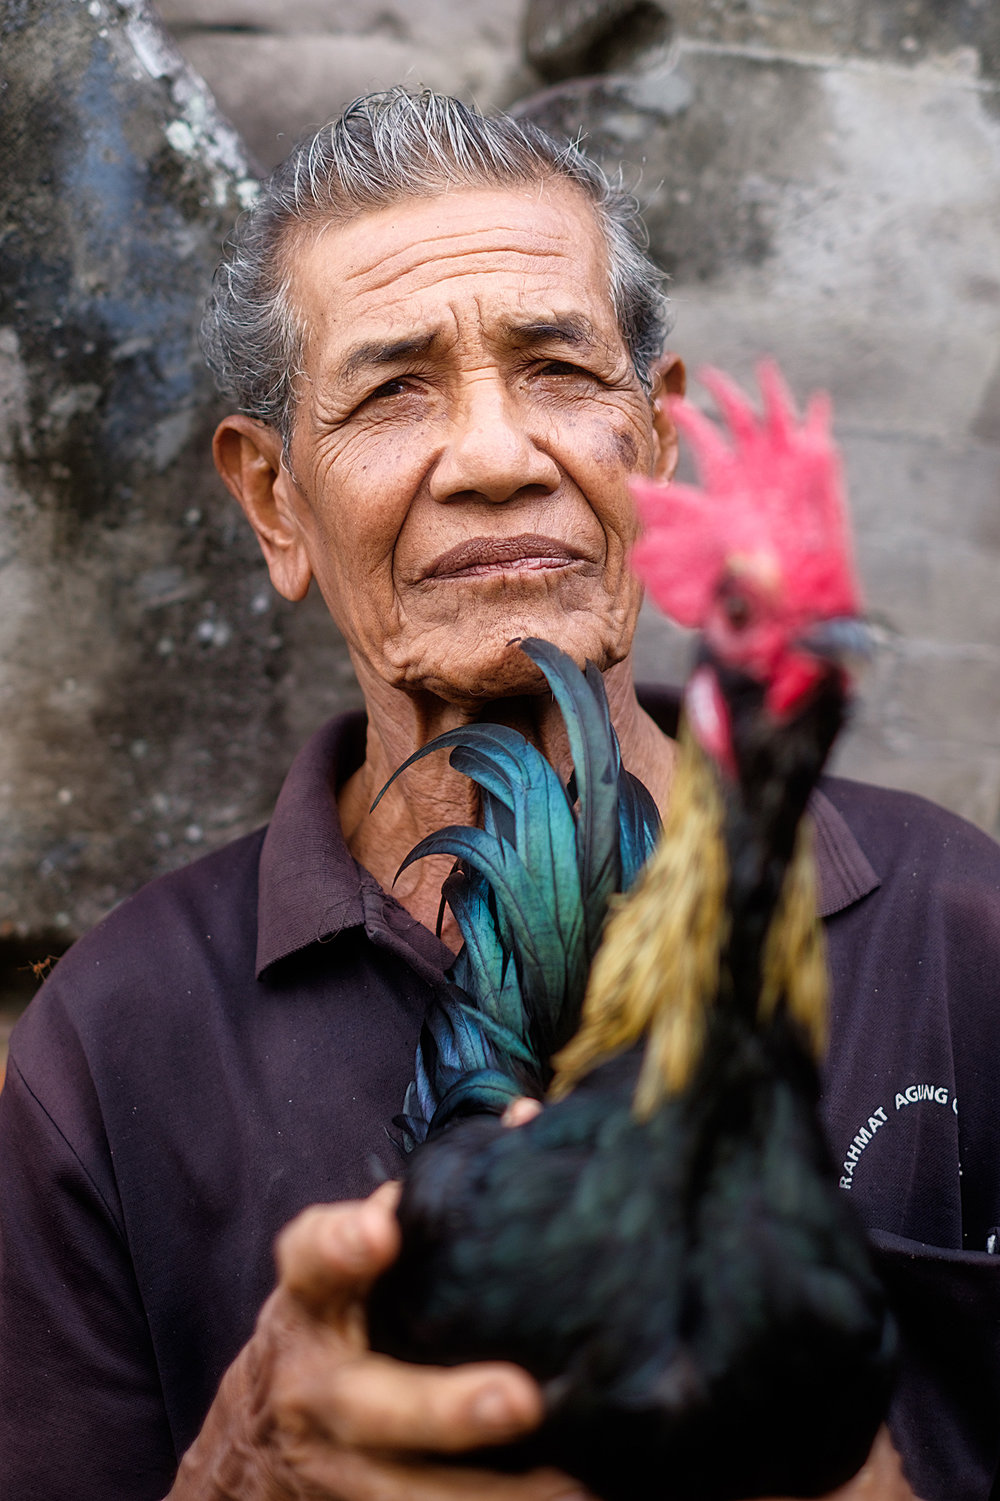 Man at a Cock Fight   While we were out walking through the fields and small villages surrounding Ubud in Bali we came across a cockfight, something which is legal in Indonesia. This is a portrait of one of the men there with his bird.